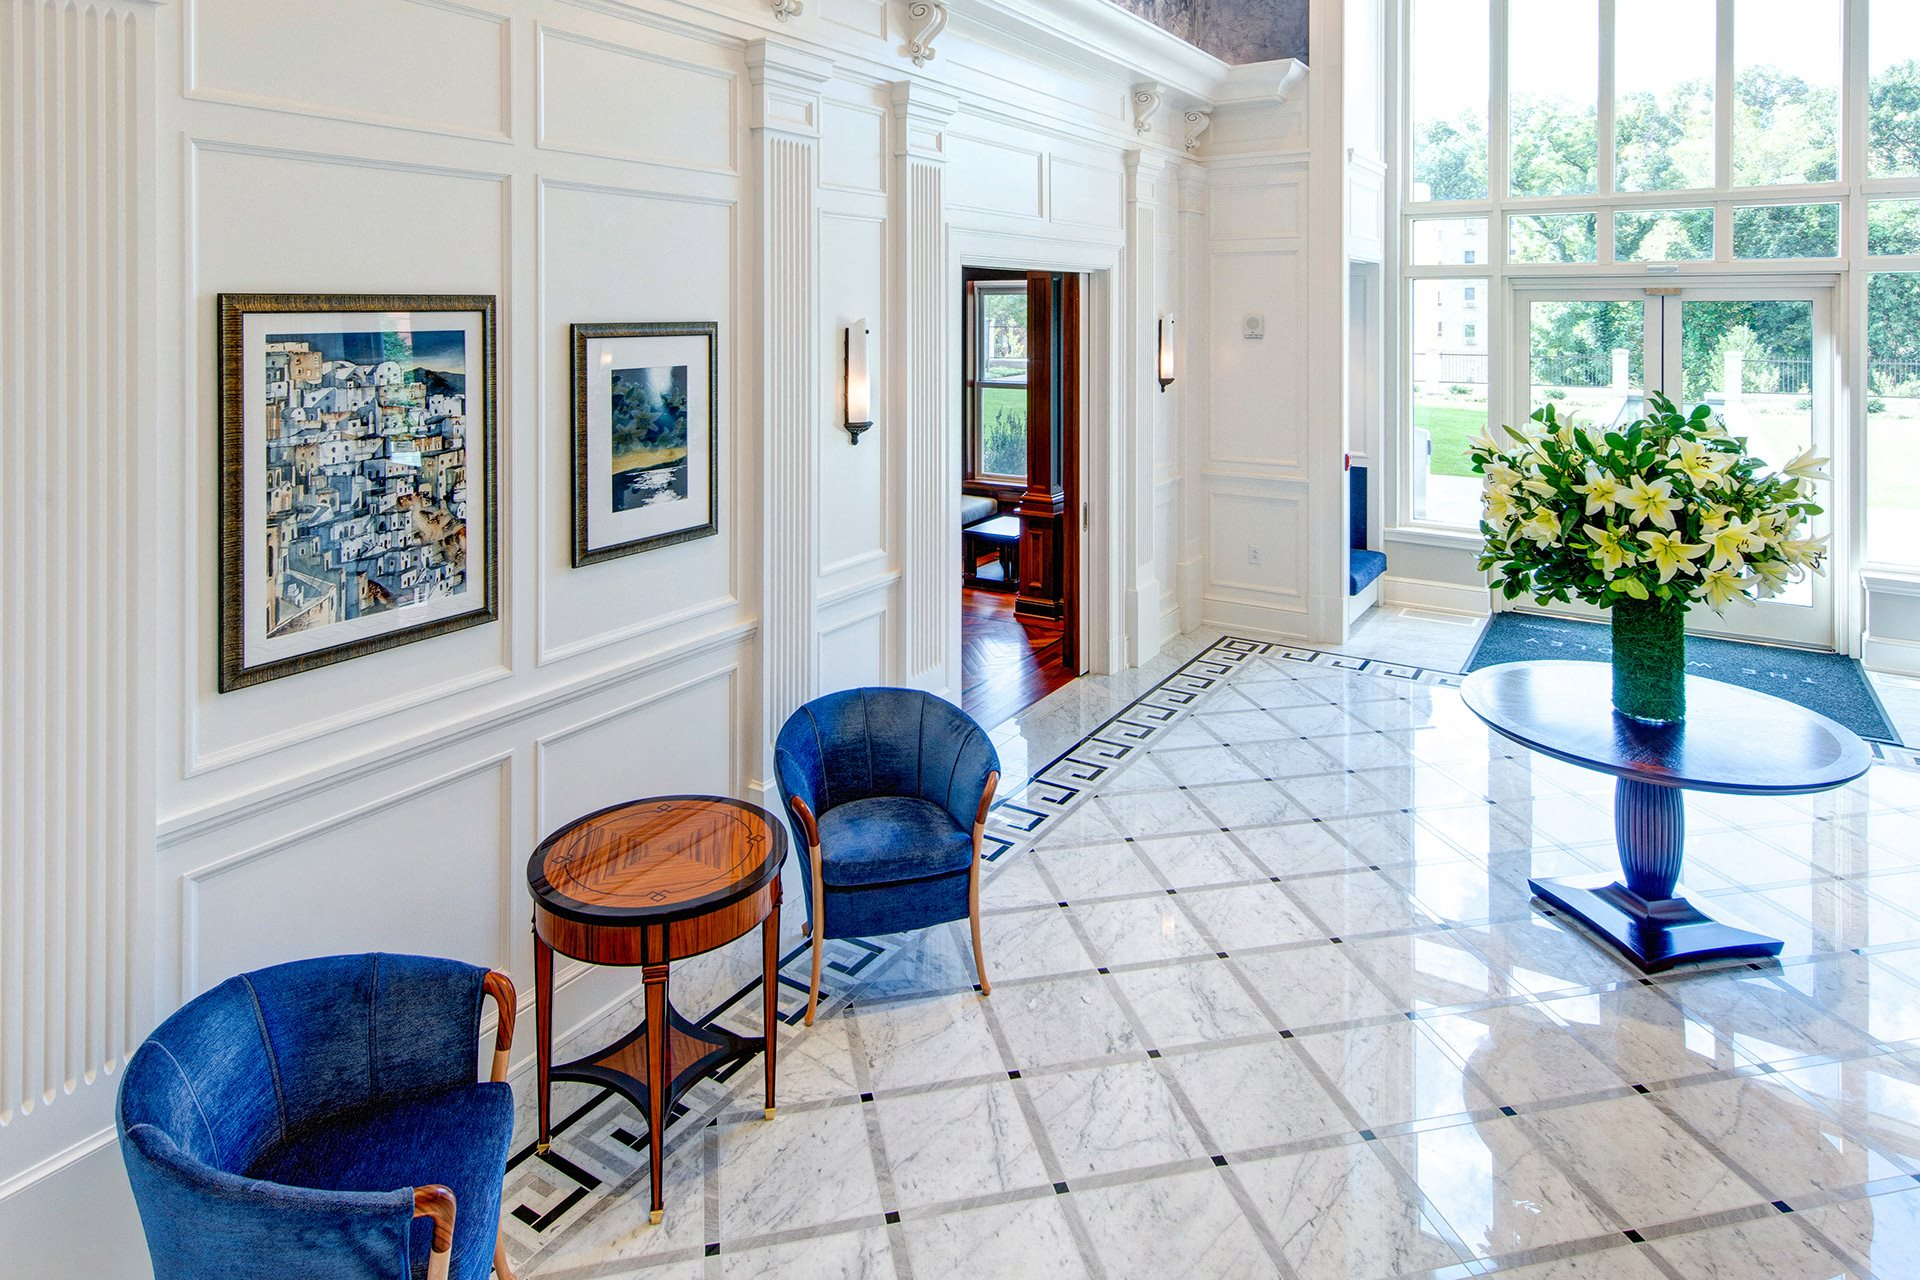 Inviting Reception Area at The Woodley, 2700 Woodley Road, NW, Washington, DC